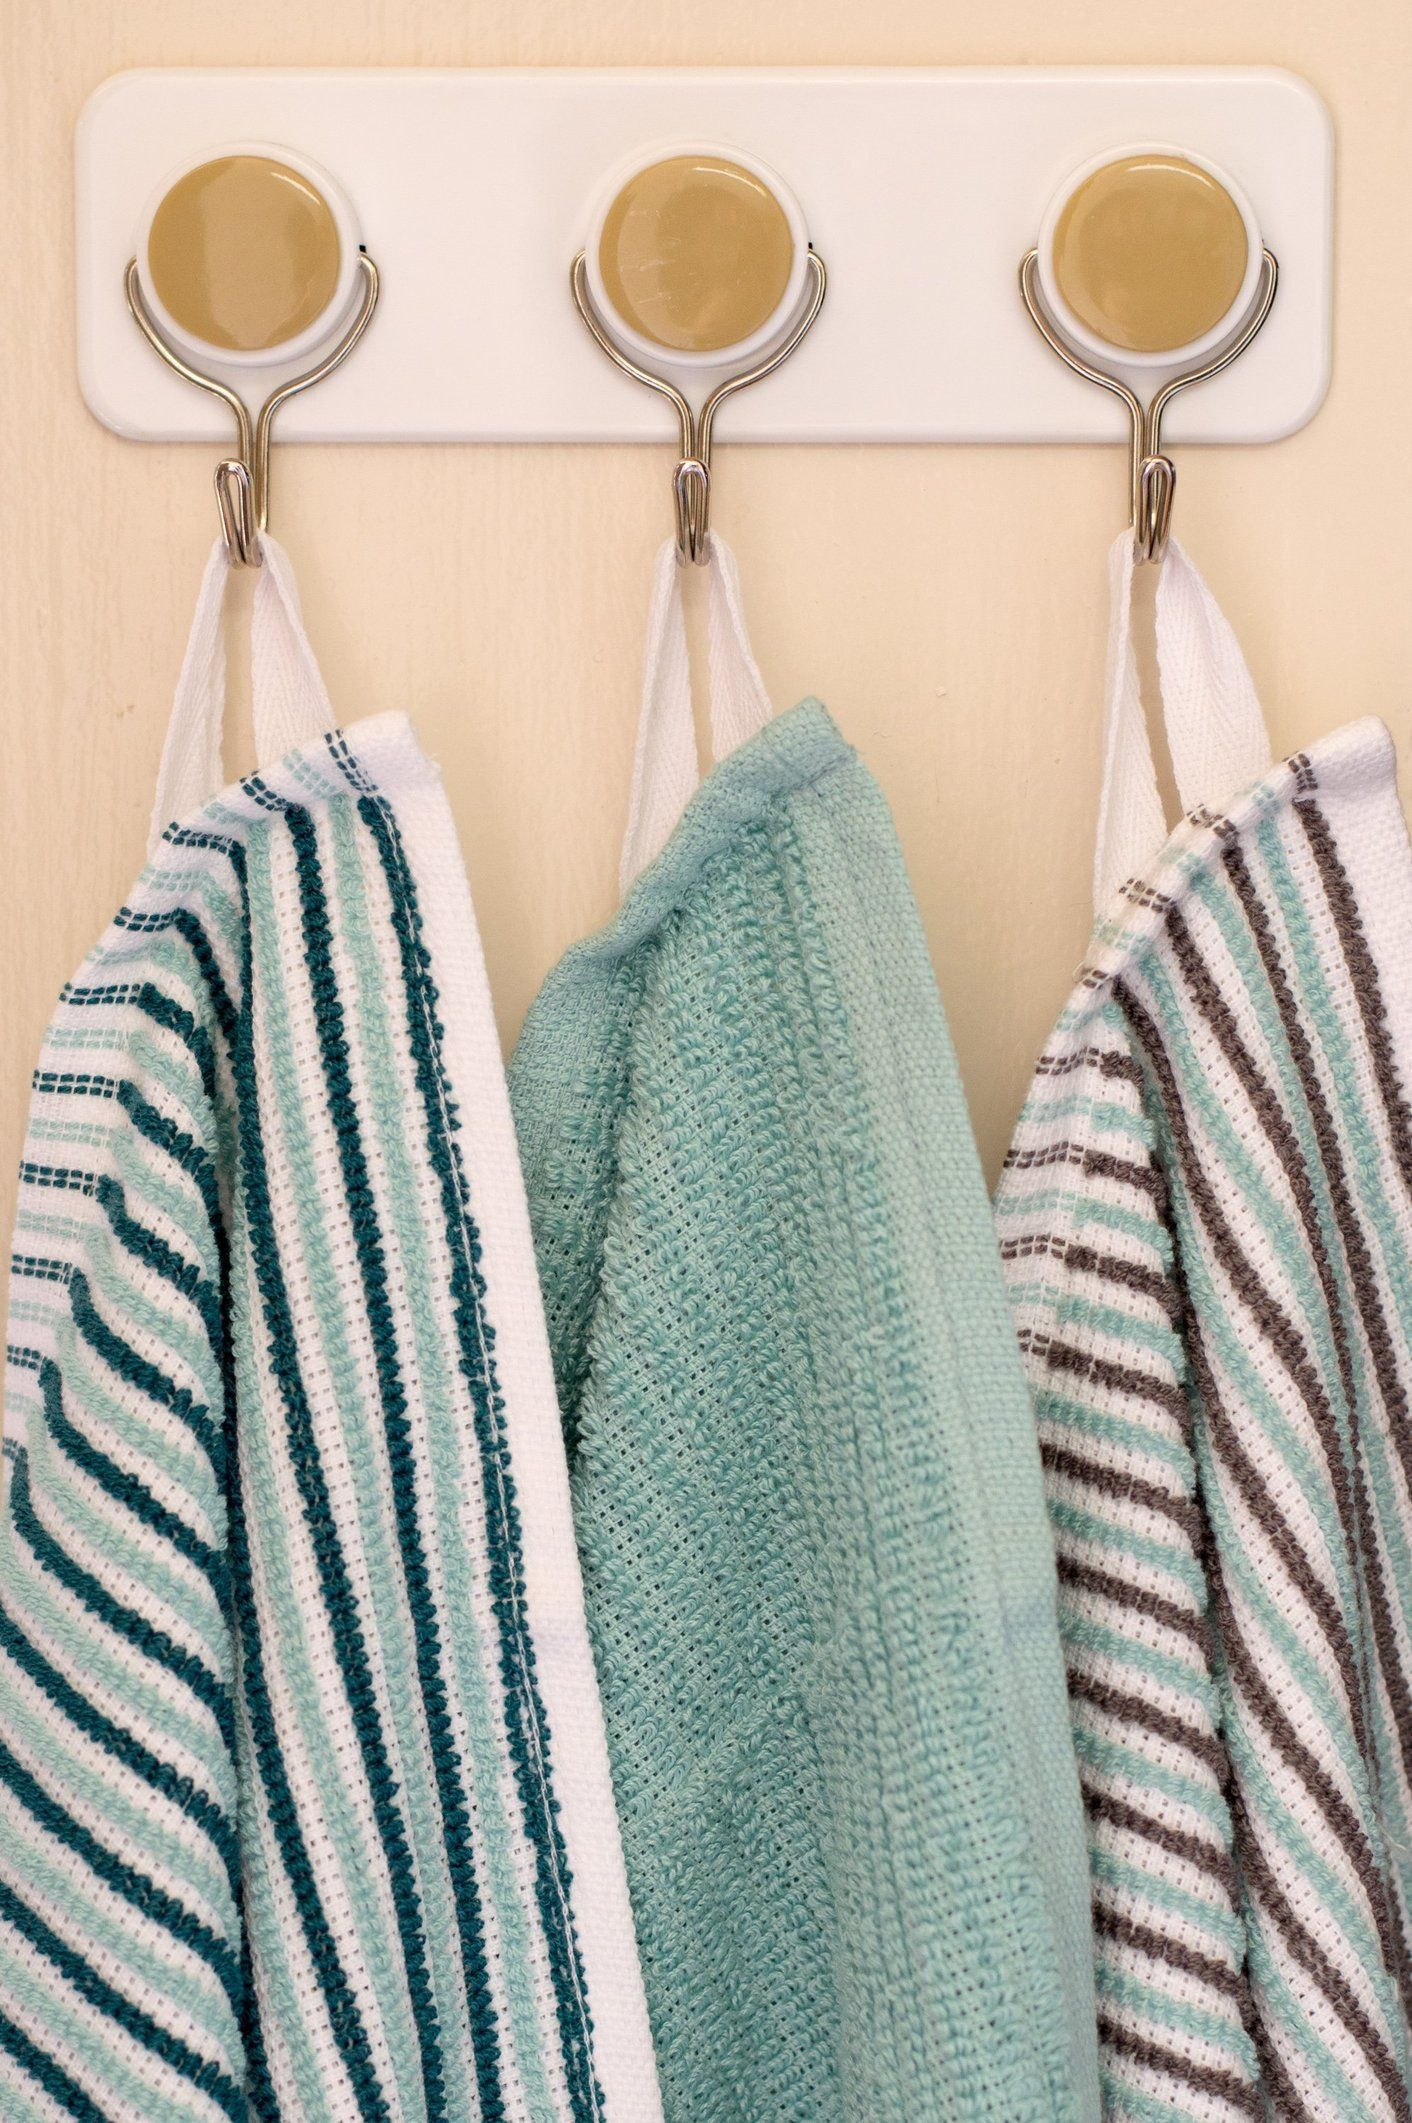 How To Add Loops To Dishtowels For Hanging Dish Towels Kitchen